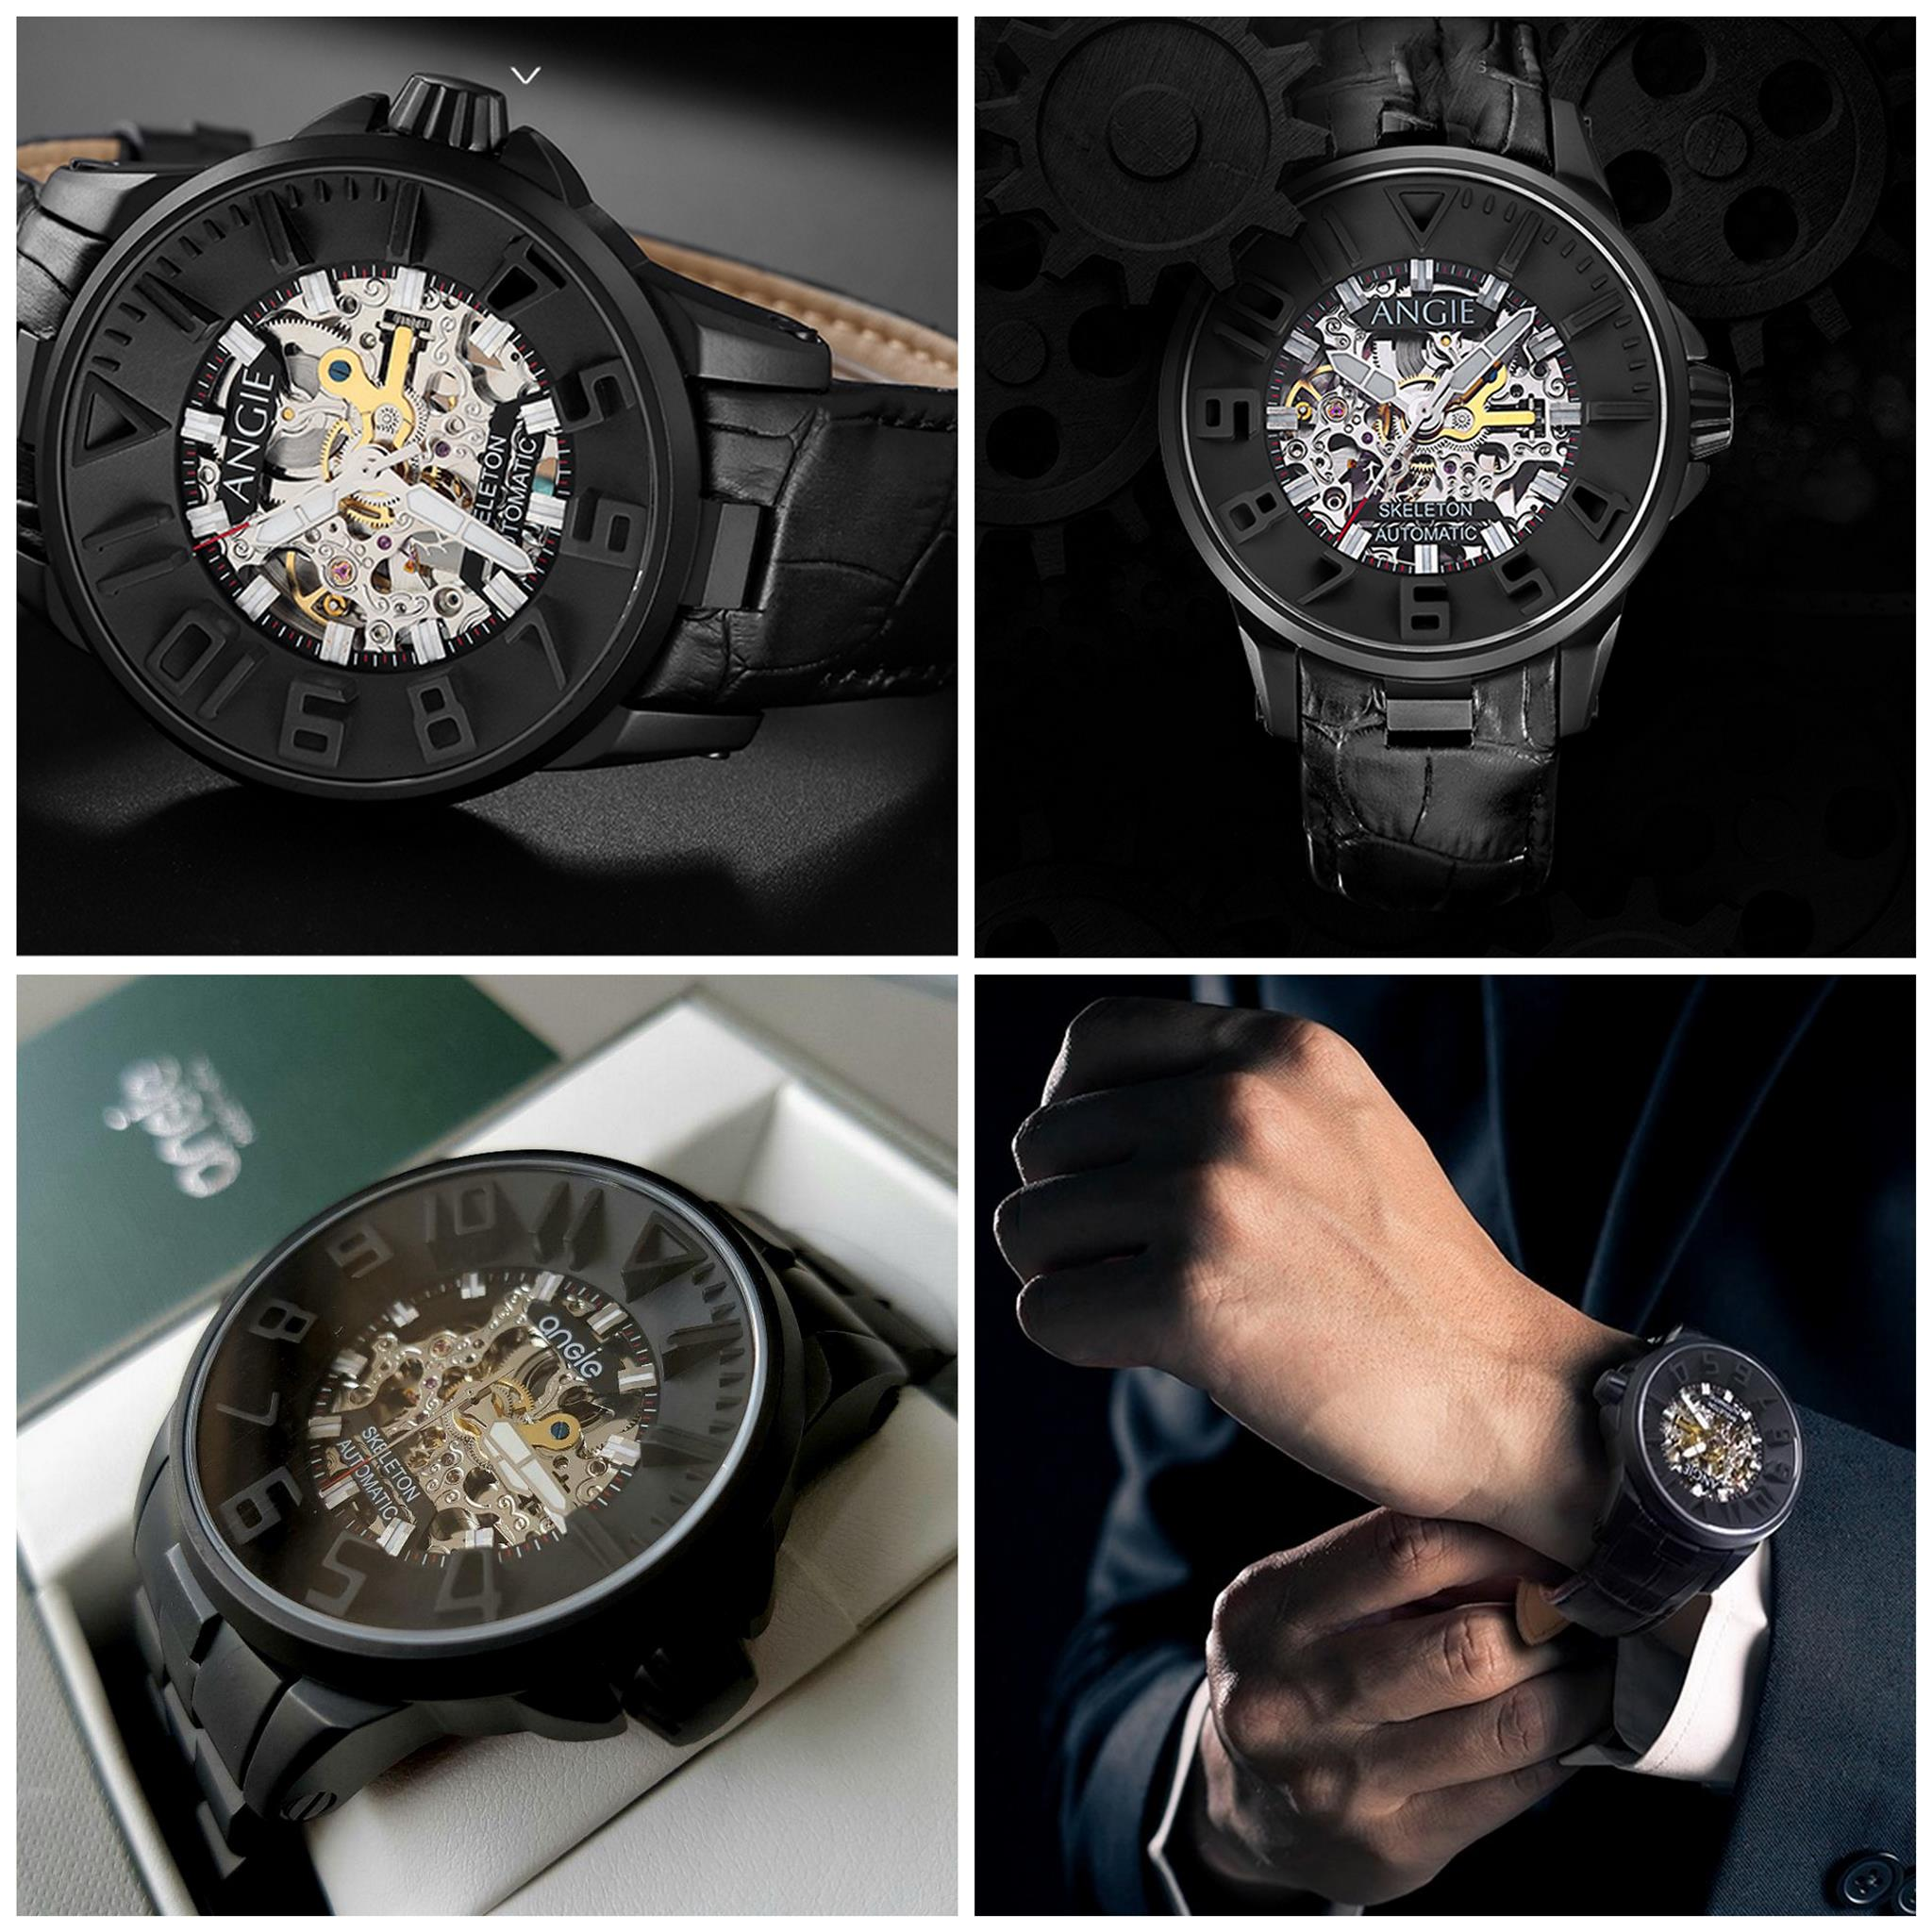 Angie Black Machinist 45mm Skeleton Automatic Sapphire 45mm